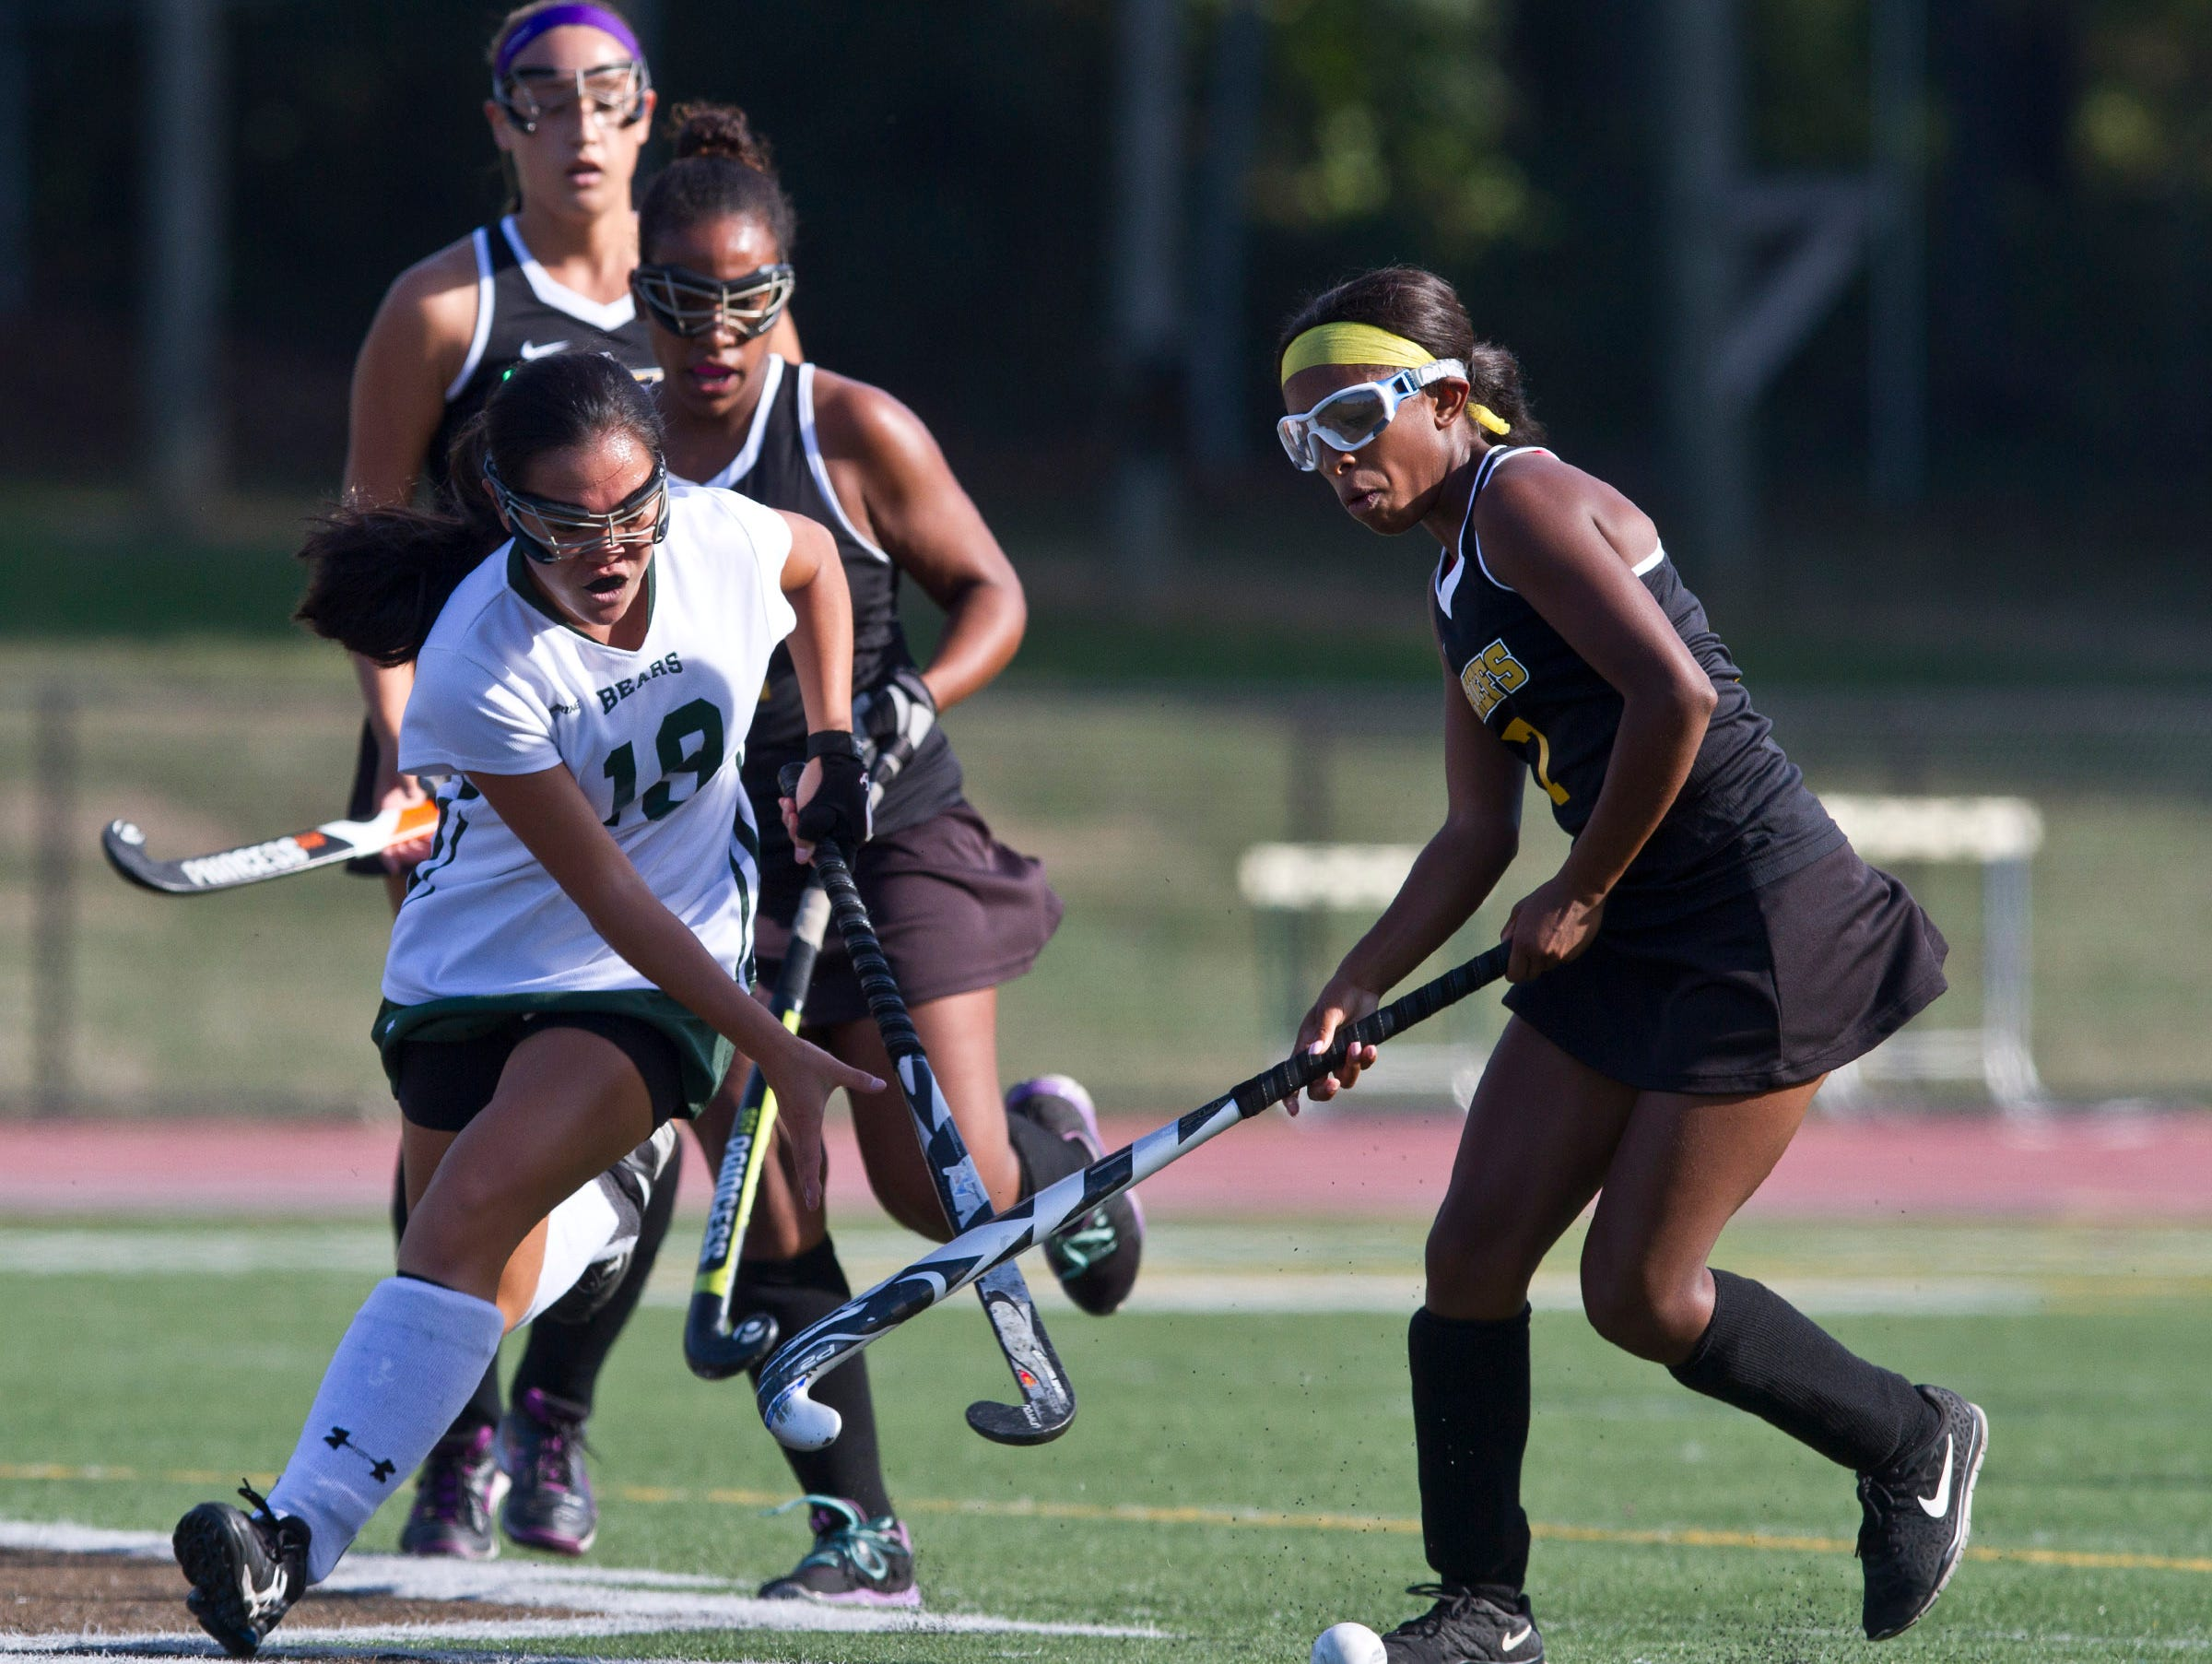 East Brunswick's Sydney Huang drives the ball past Piscataway's Dominique Nelson. Piscataway vs East Brunswick field hockey. 72670492 East Brunswick, NJ Thursday, September 24, 2015 @dhoodhood